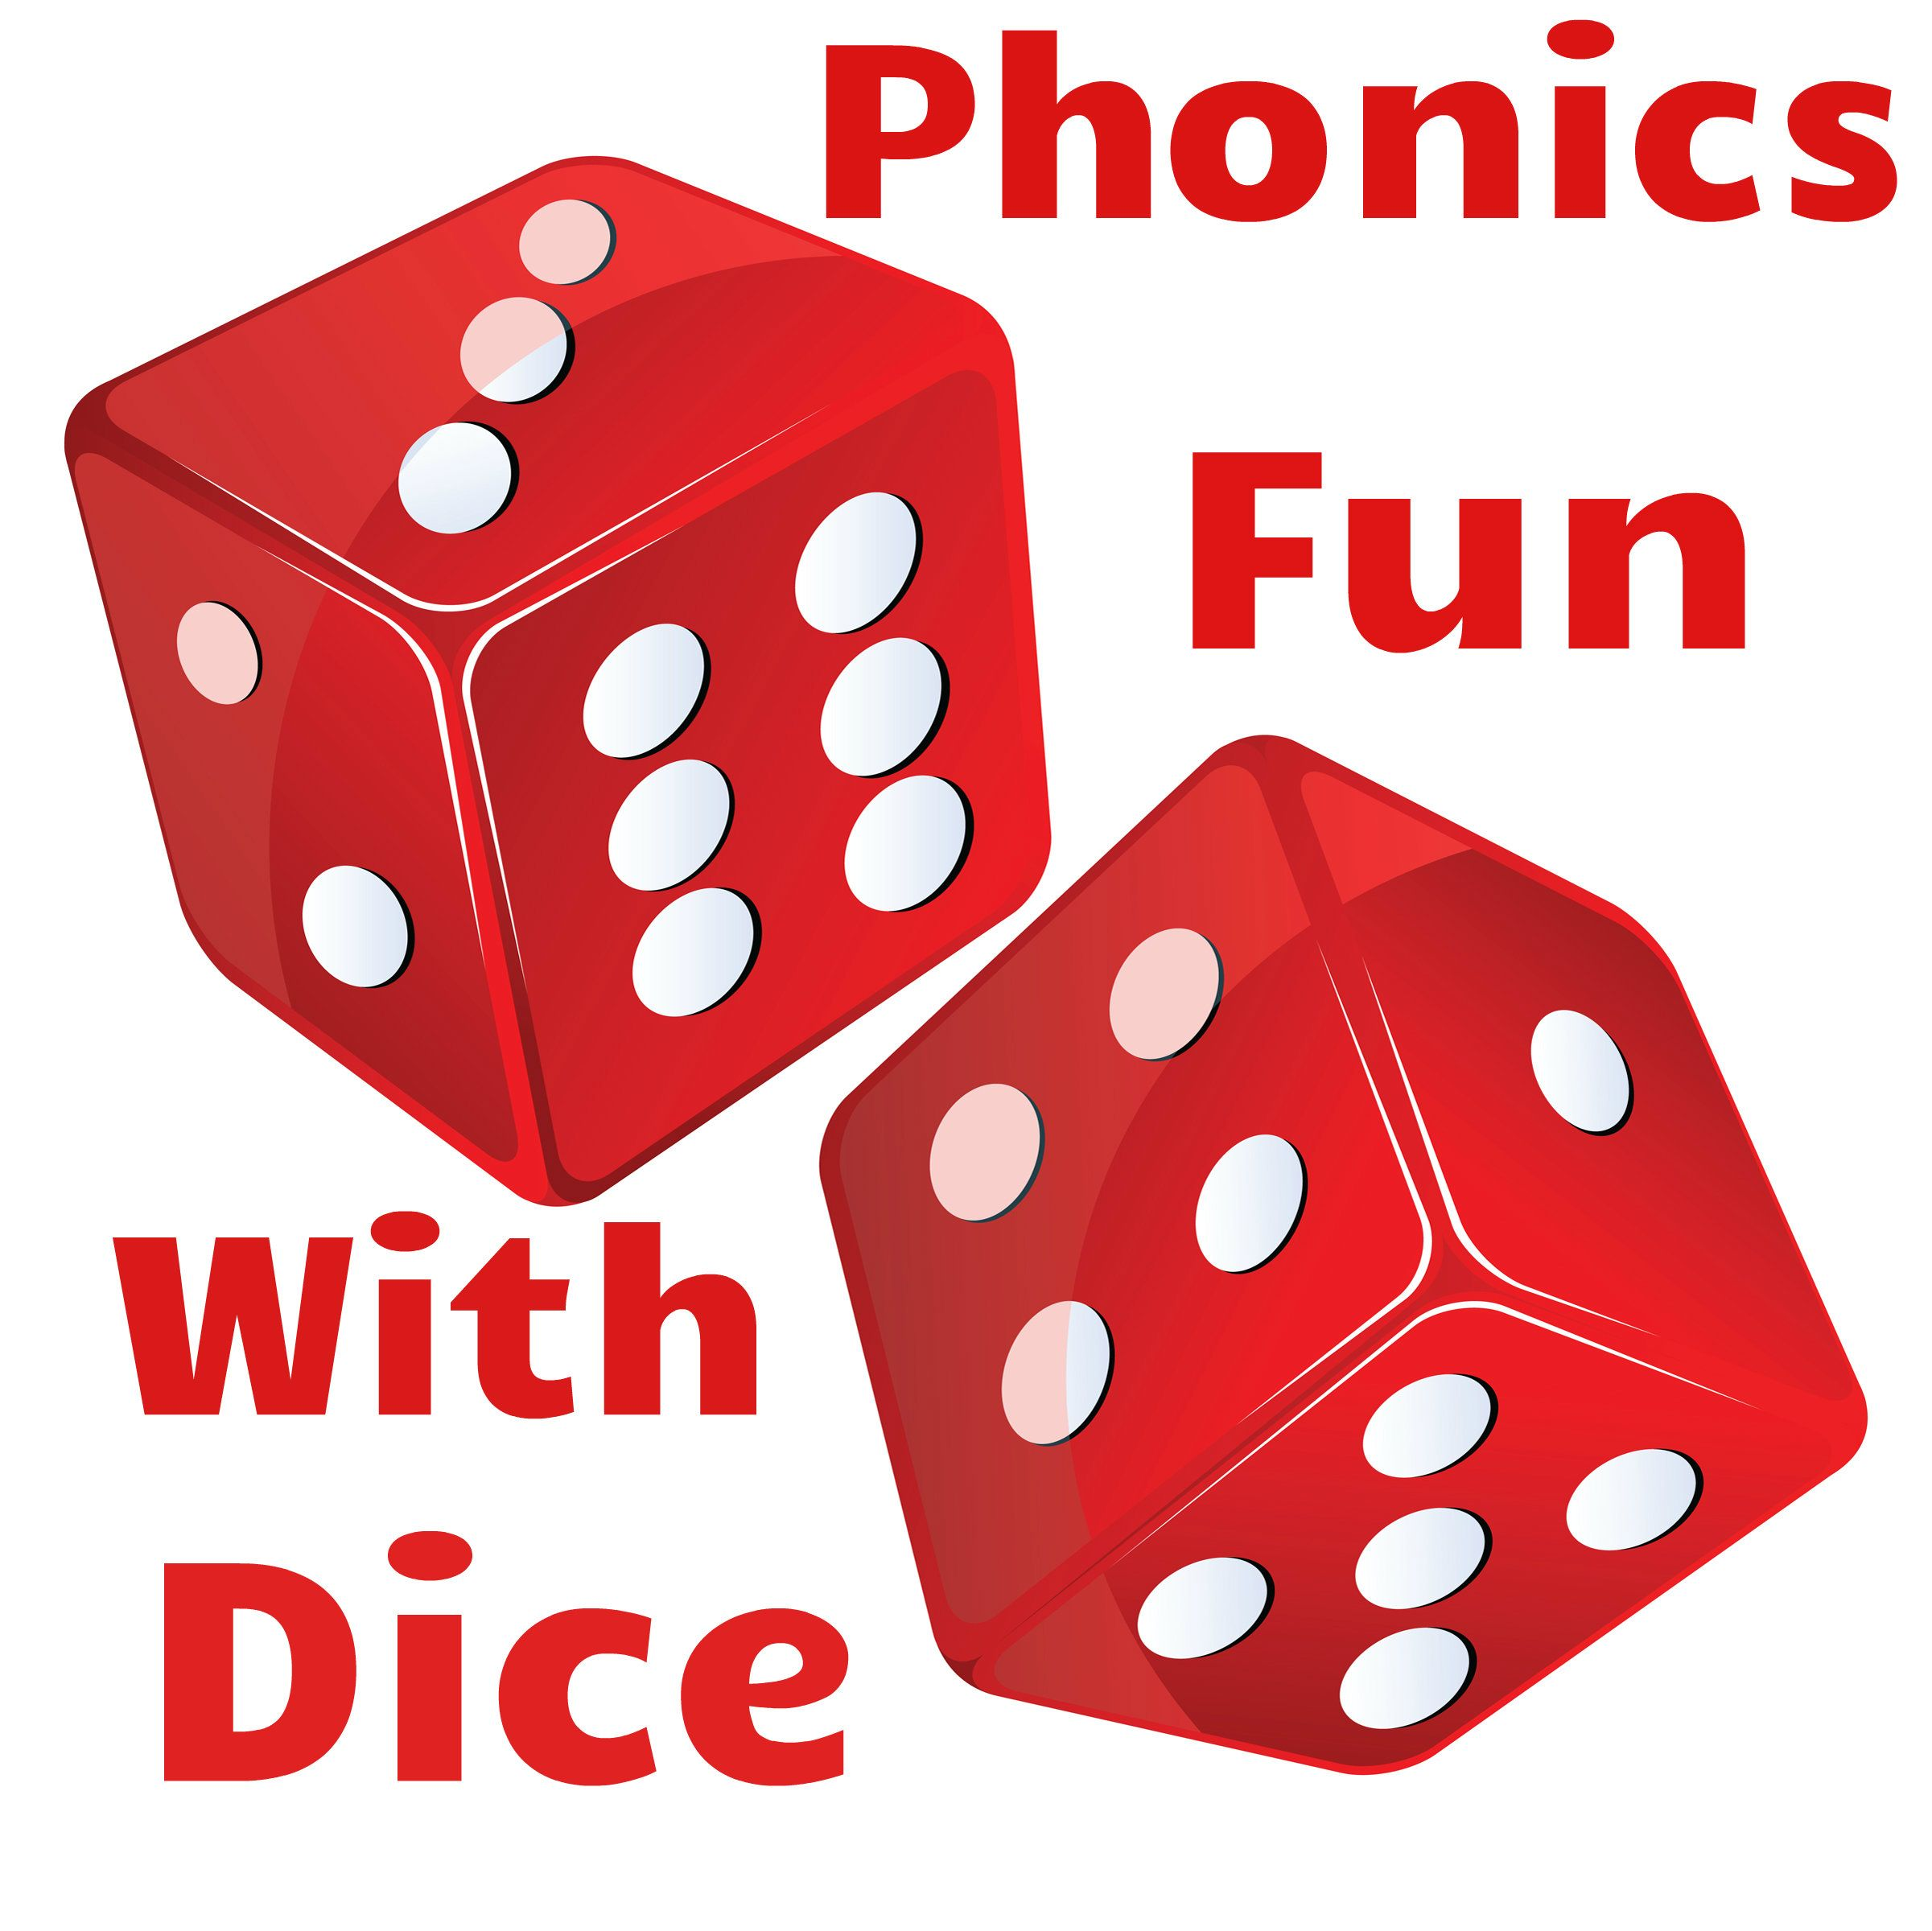 Phonics Fun With Interactive Dice Add Your Own Words To